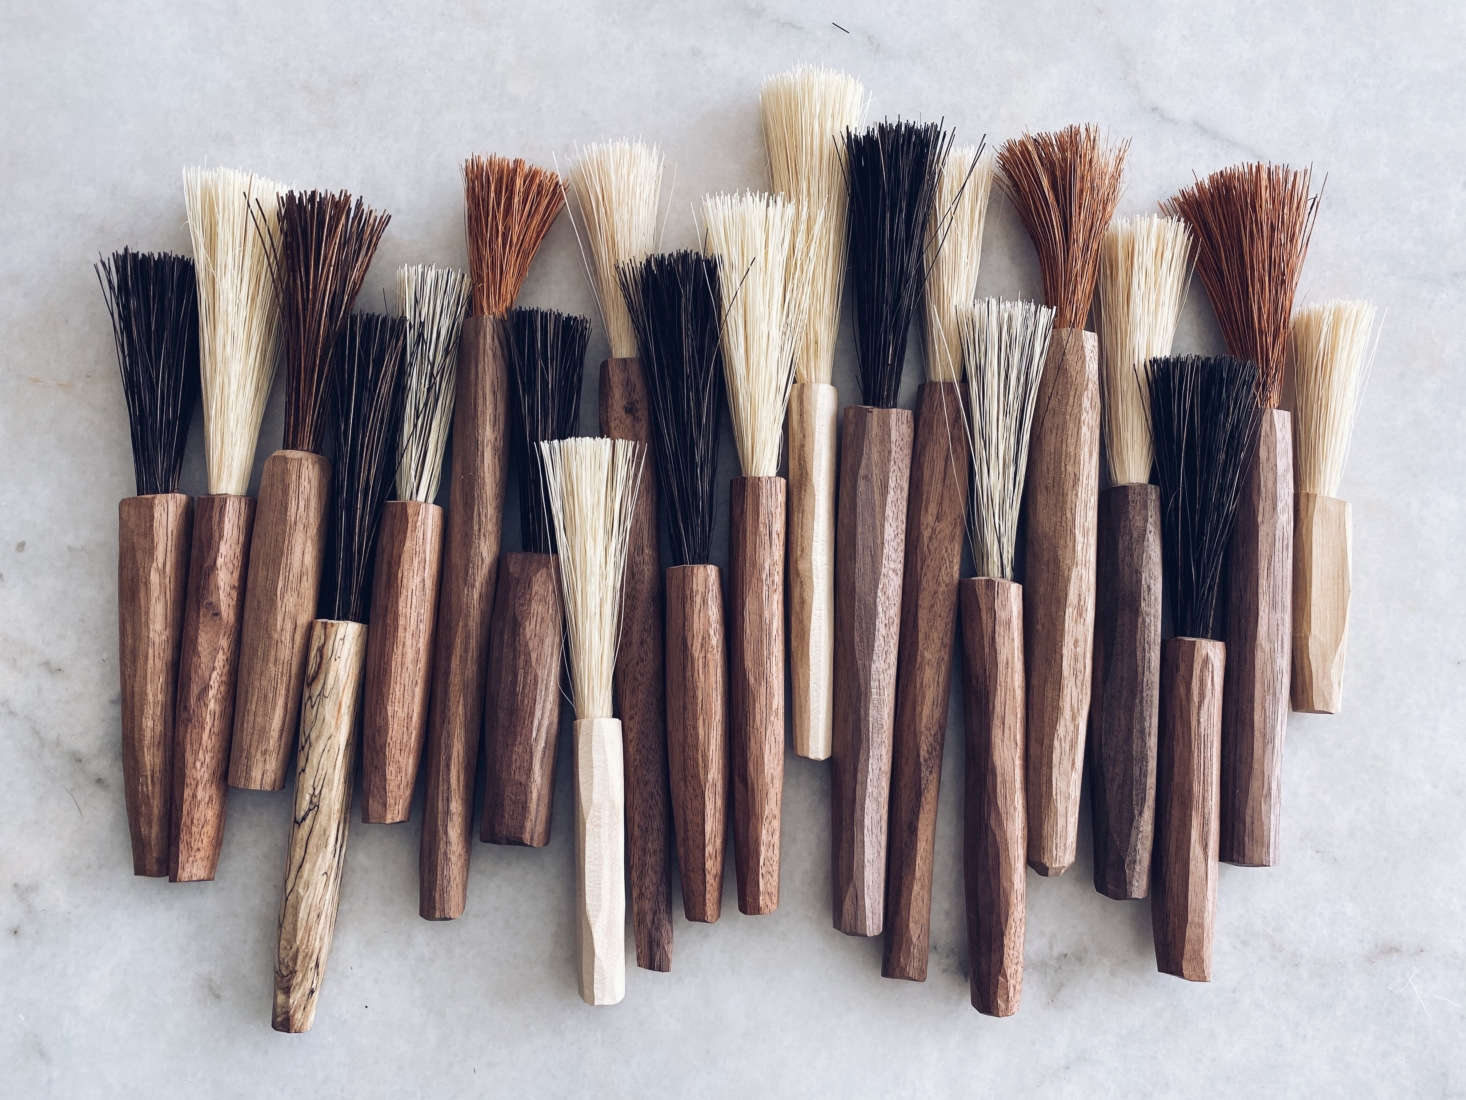 When sawdust became a part of her daily life, Sophie started carving brushes with bristles of plant-based fibers. &#8